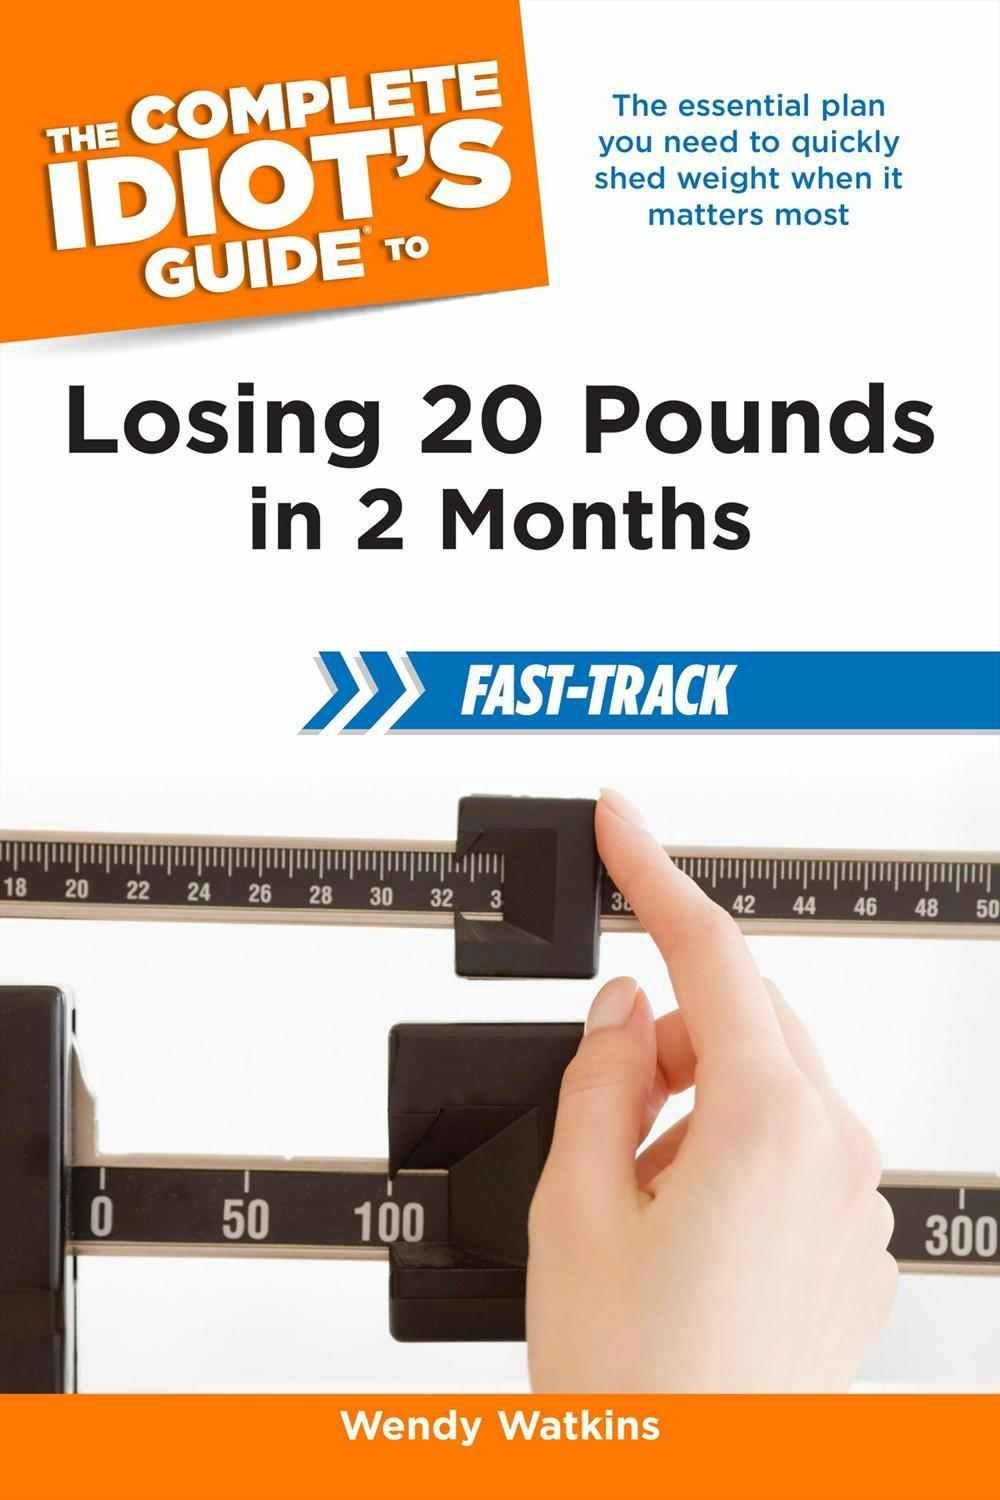 The Complete Idiot's Guide to Losing 20 Pounds in 2 Months Fast-Track:  Wendy Watkins: 9781615642496: Amazon.com: Books